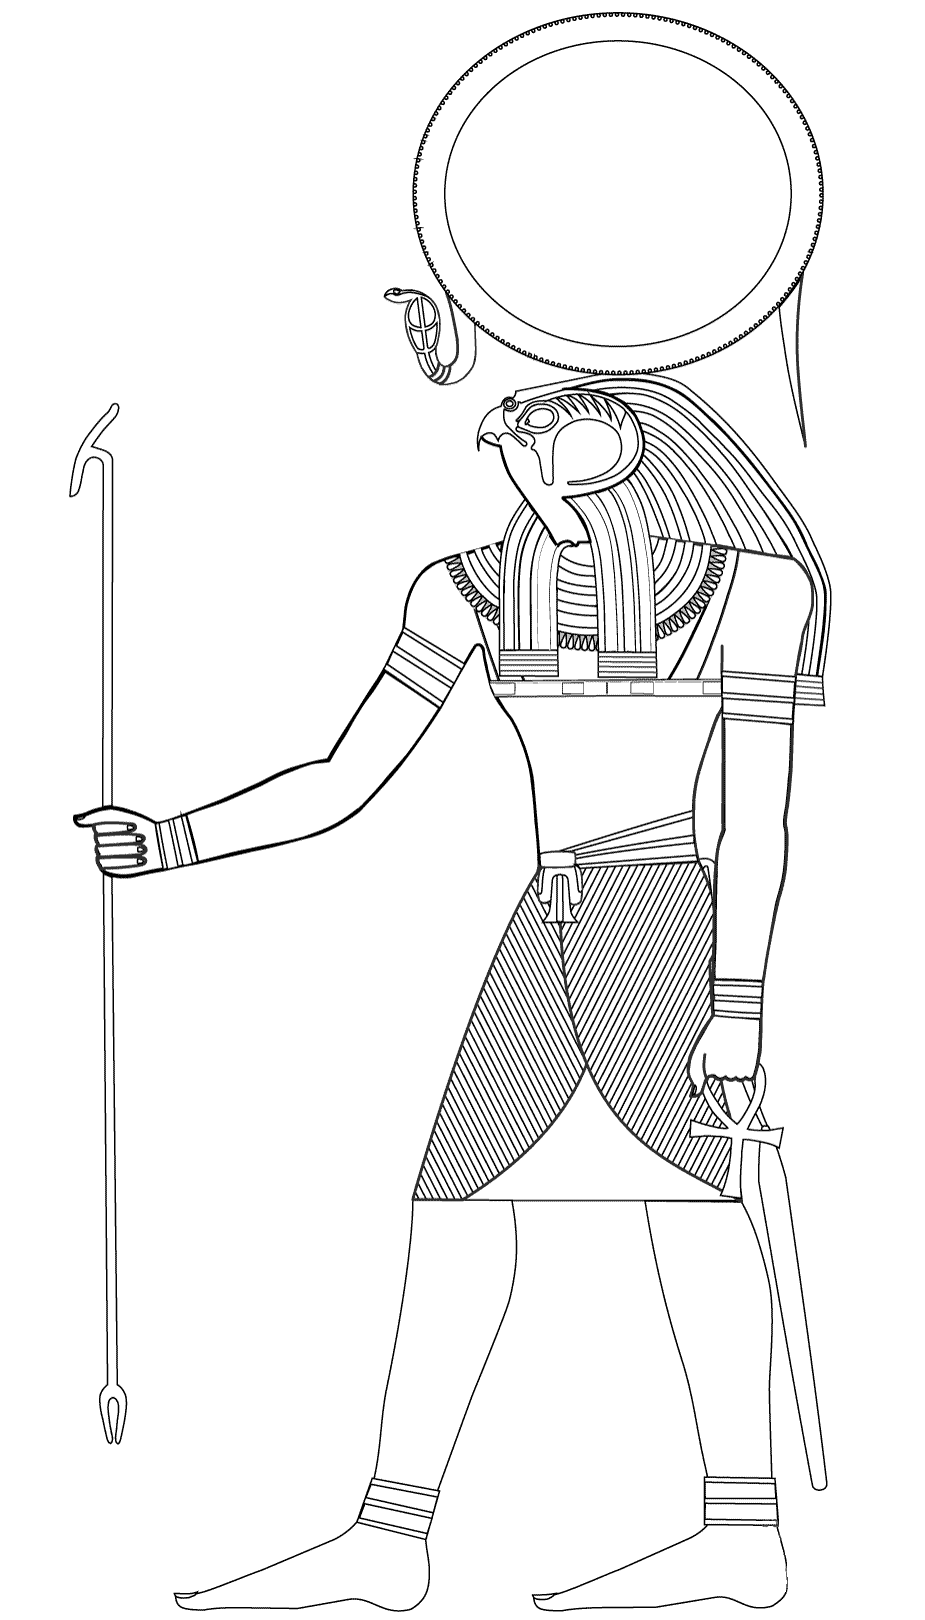 Simple Egypt coloring page to download for free